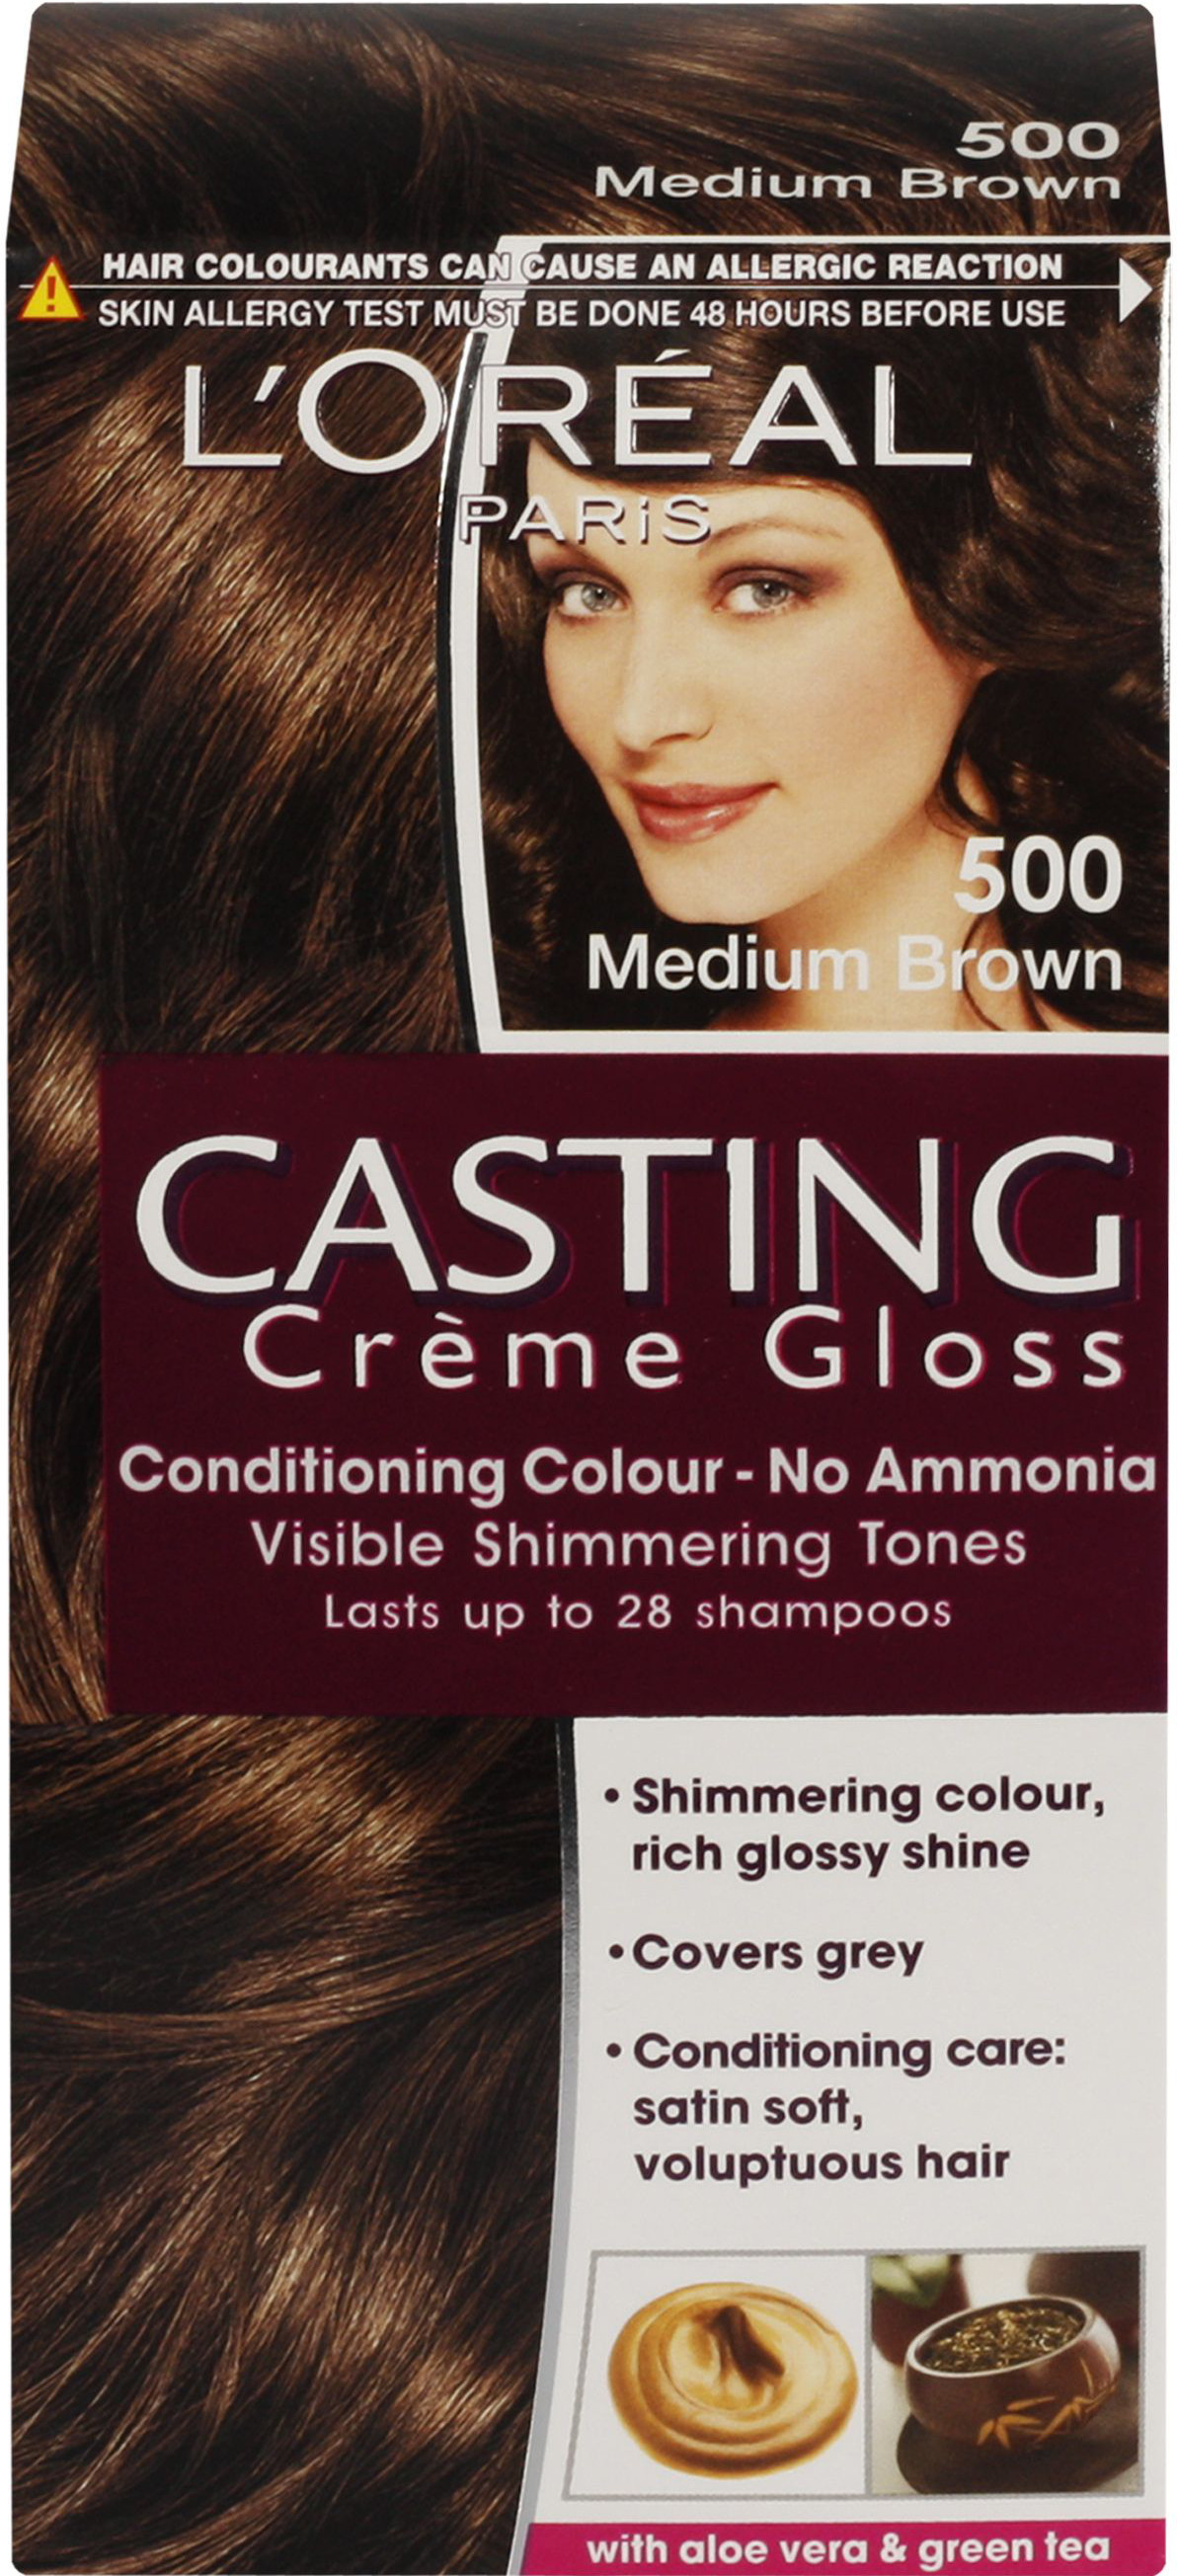 Loreal excellence hair color shades chart india best hair color notasprensa nvjuhfo Image collections